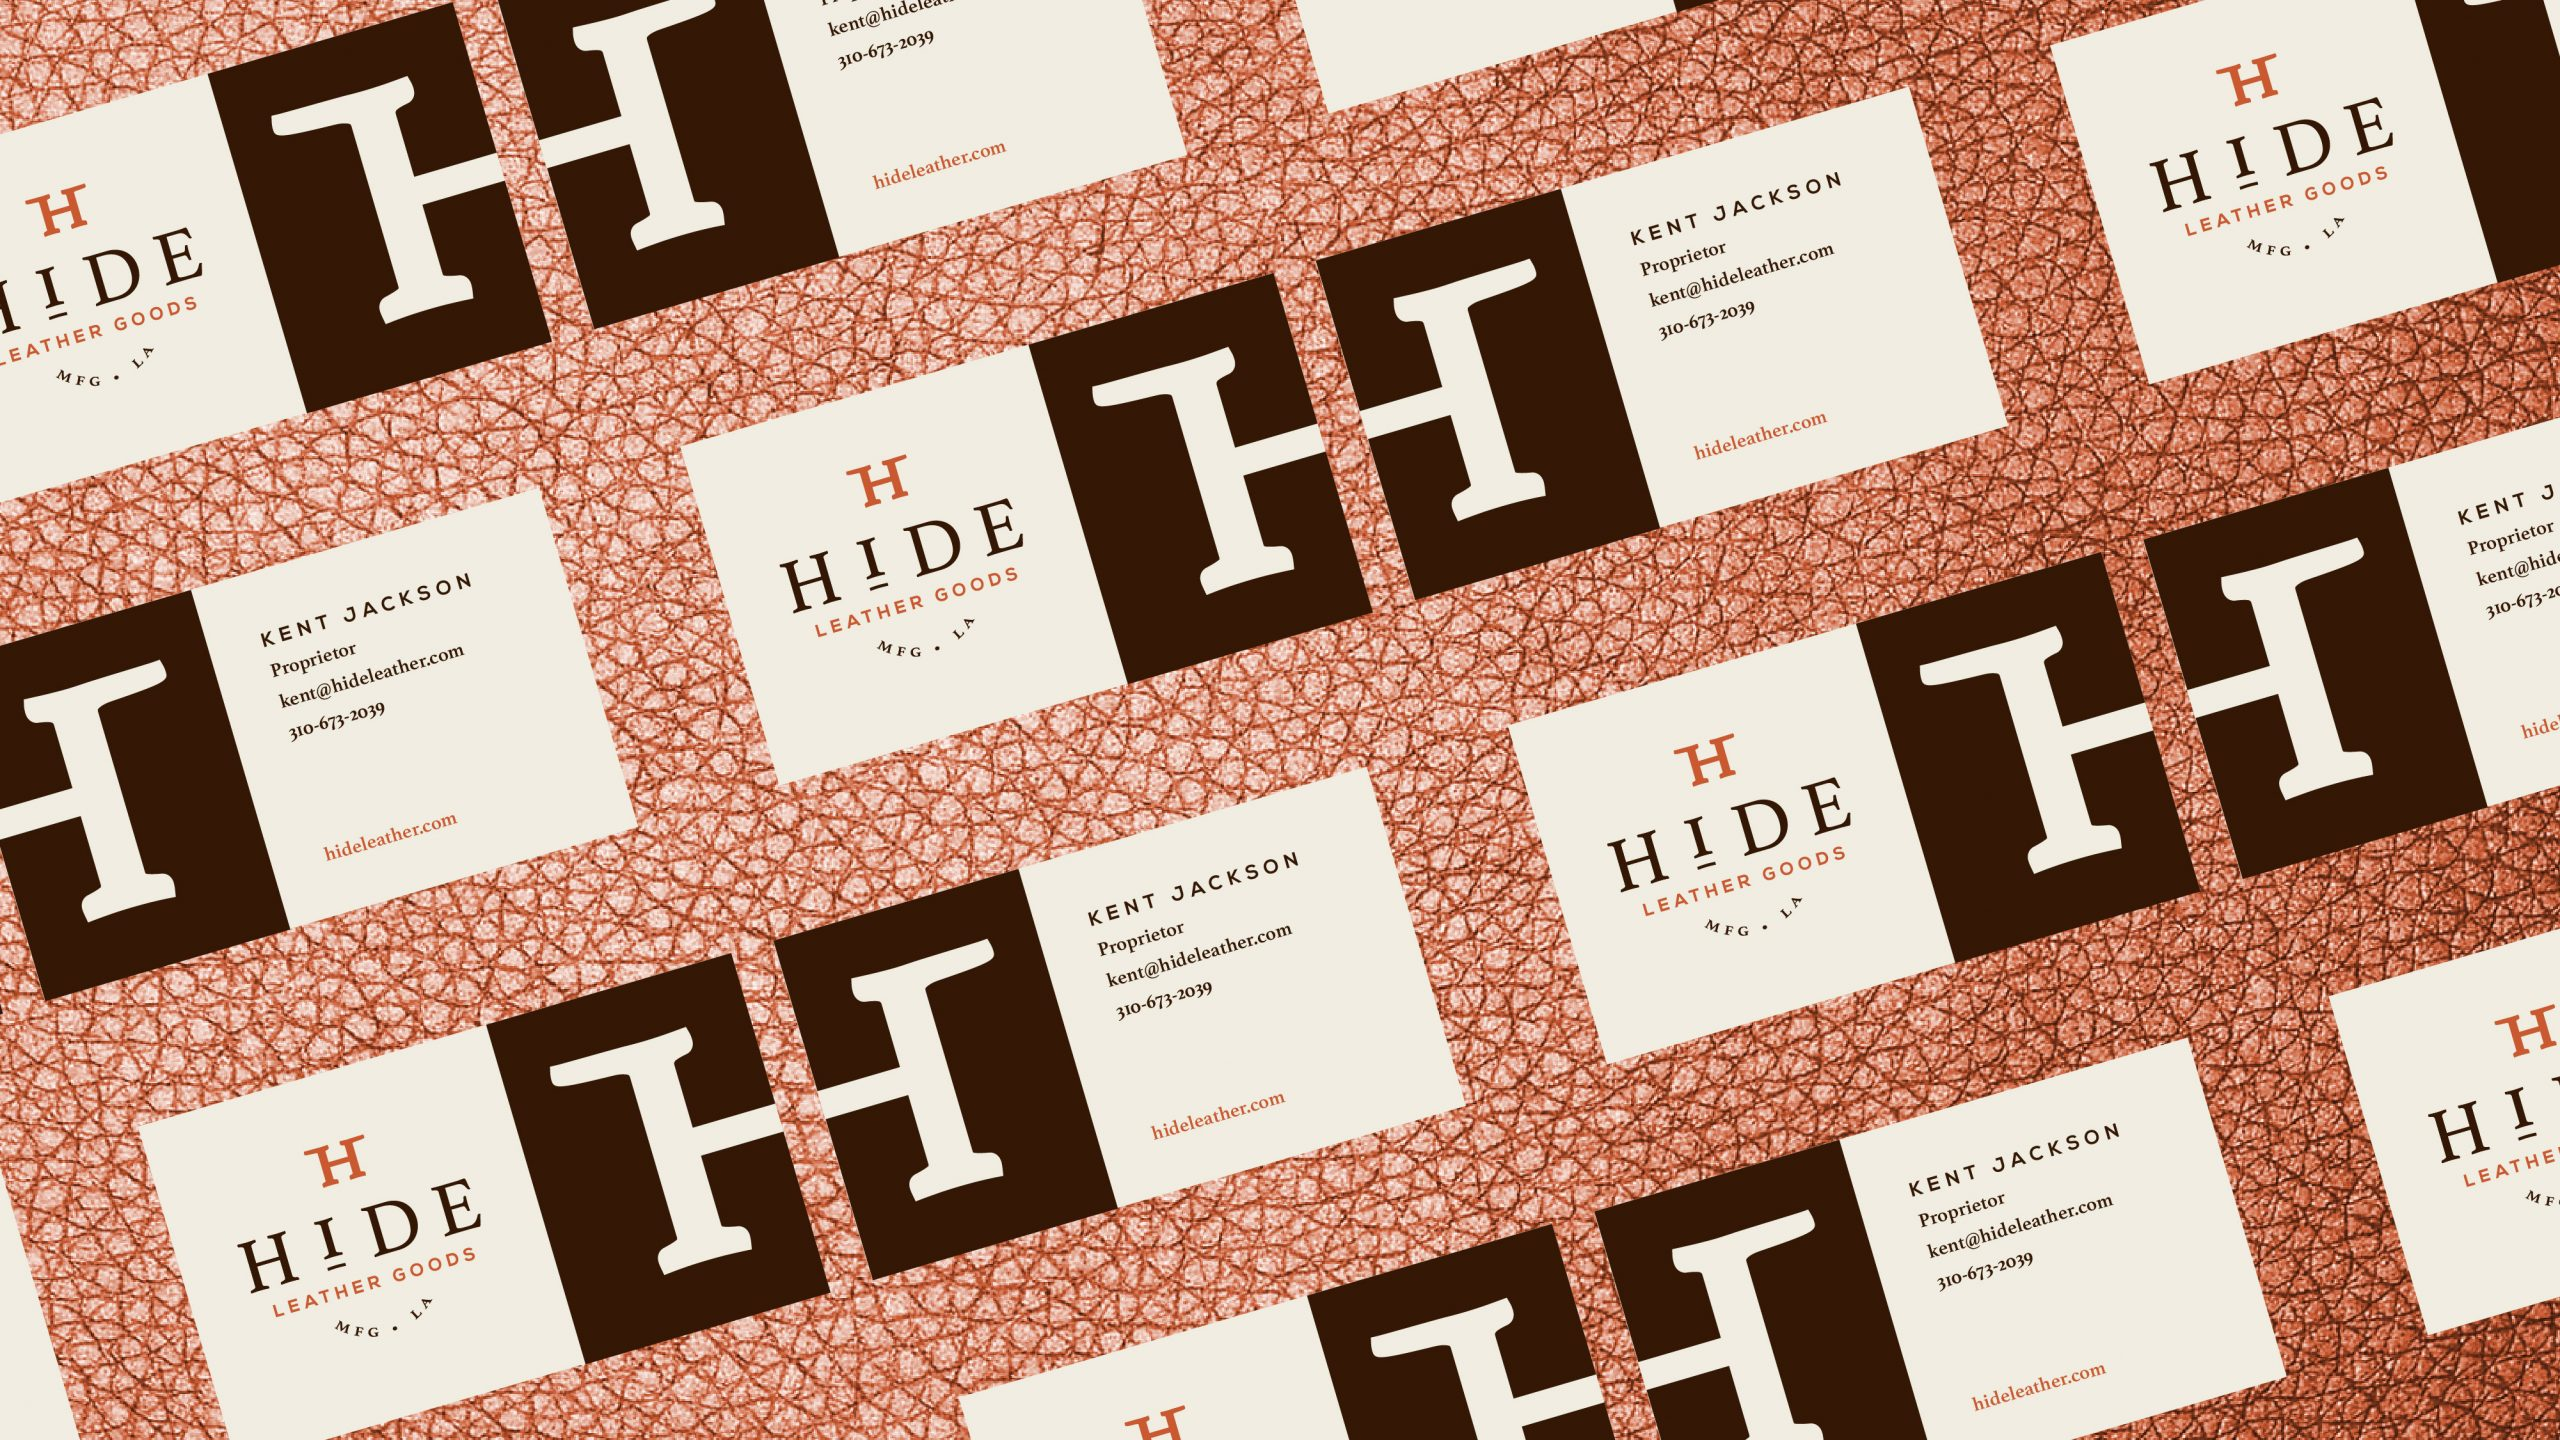 HIDE business cards